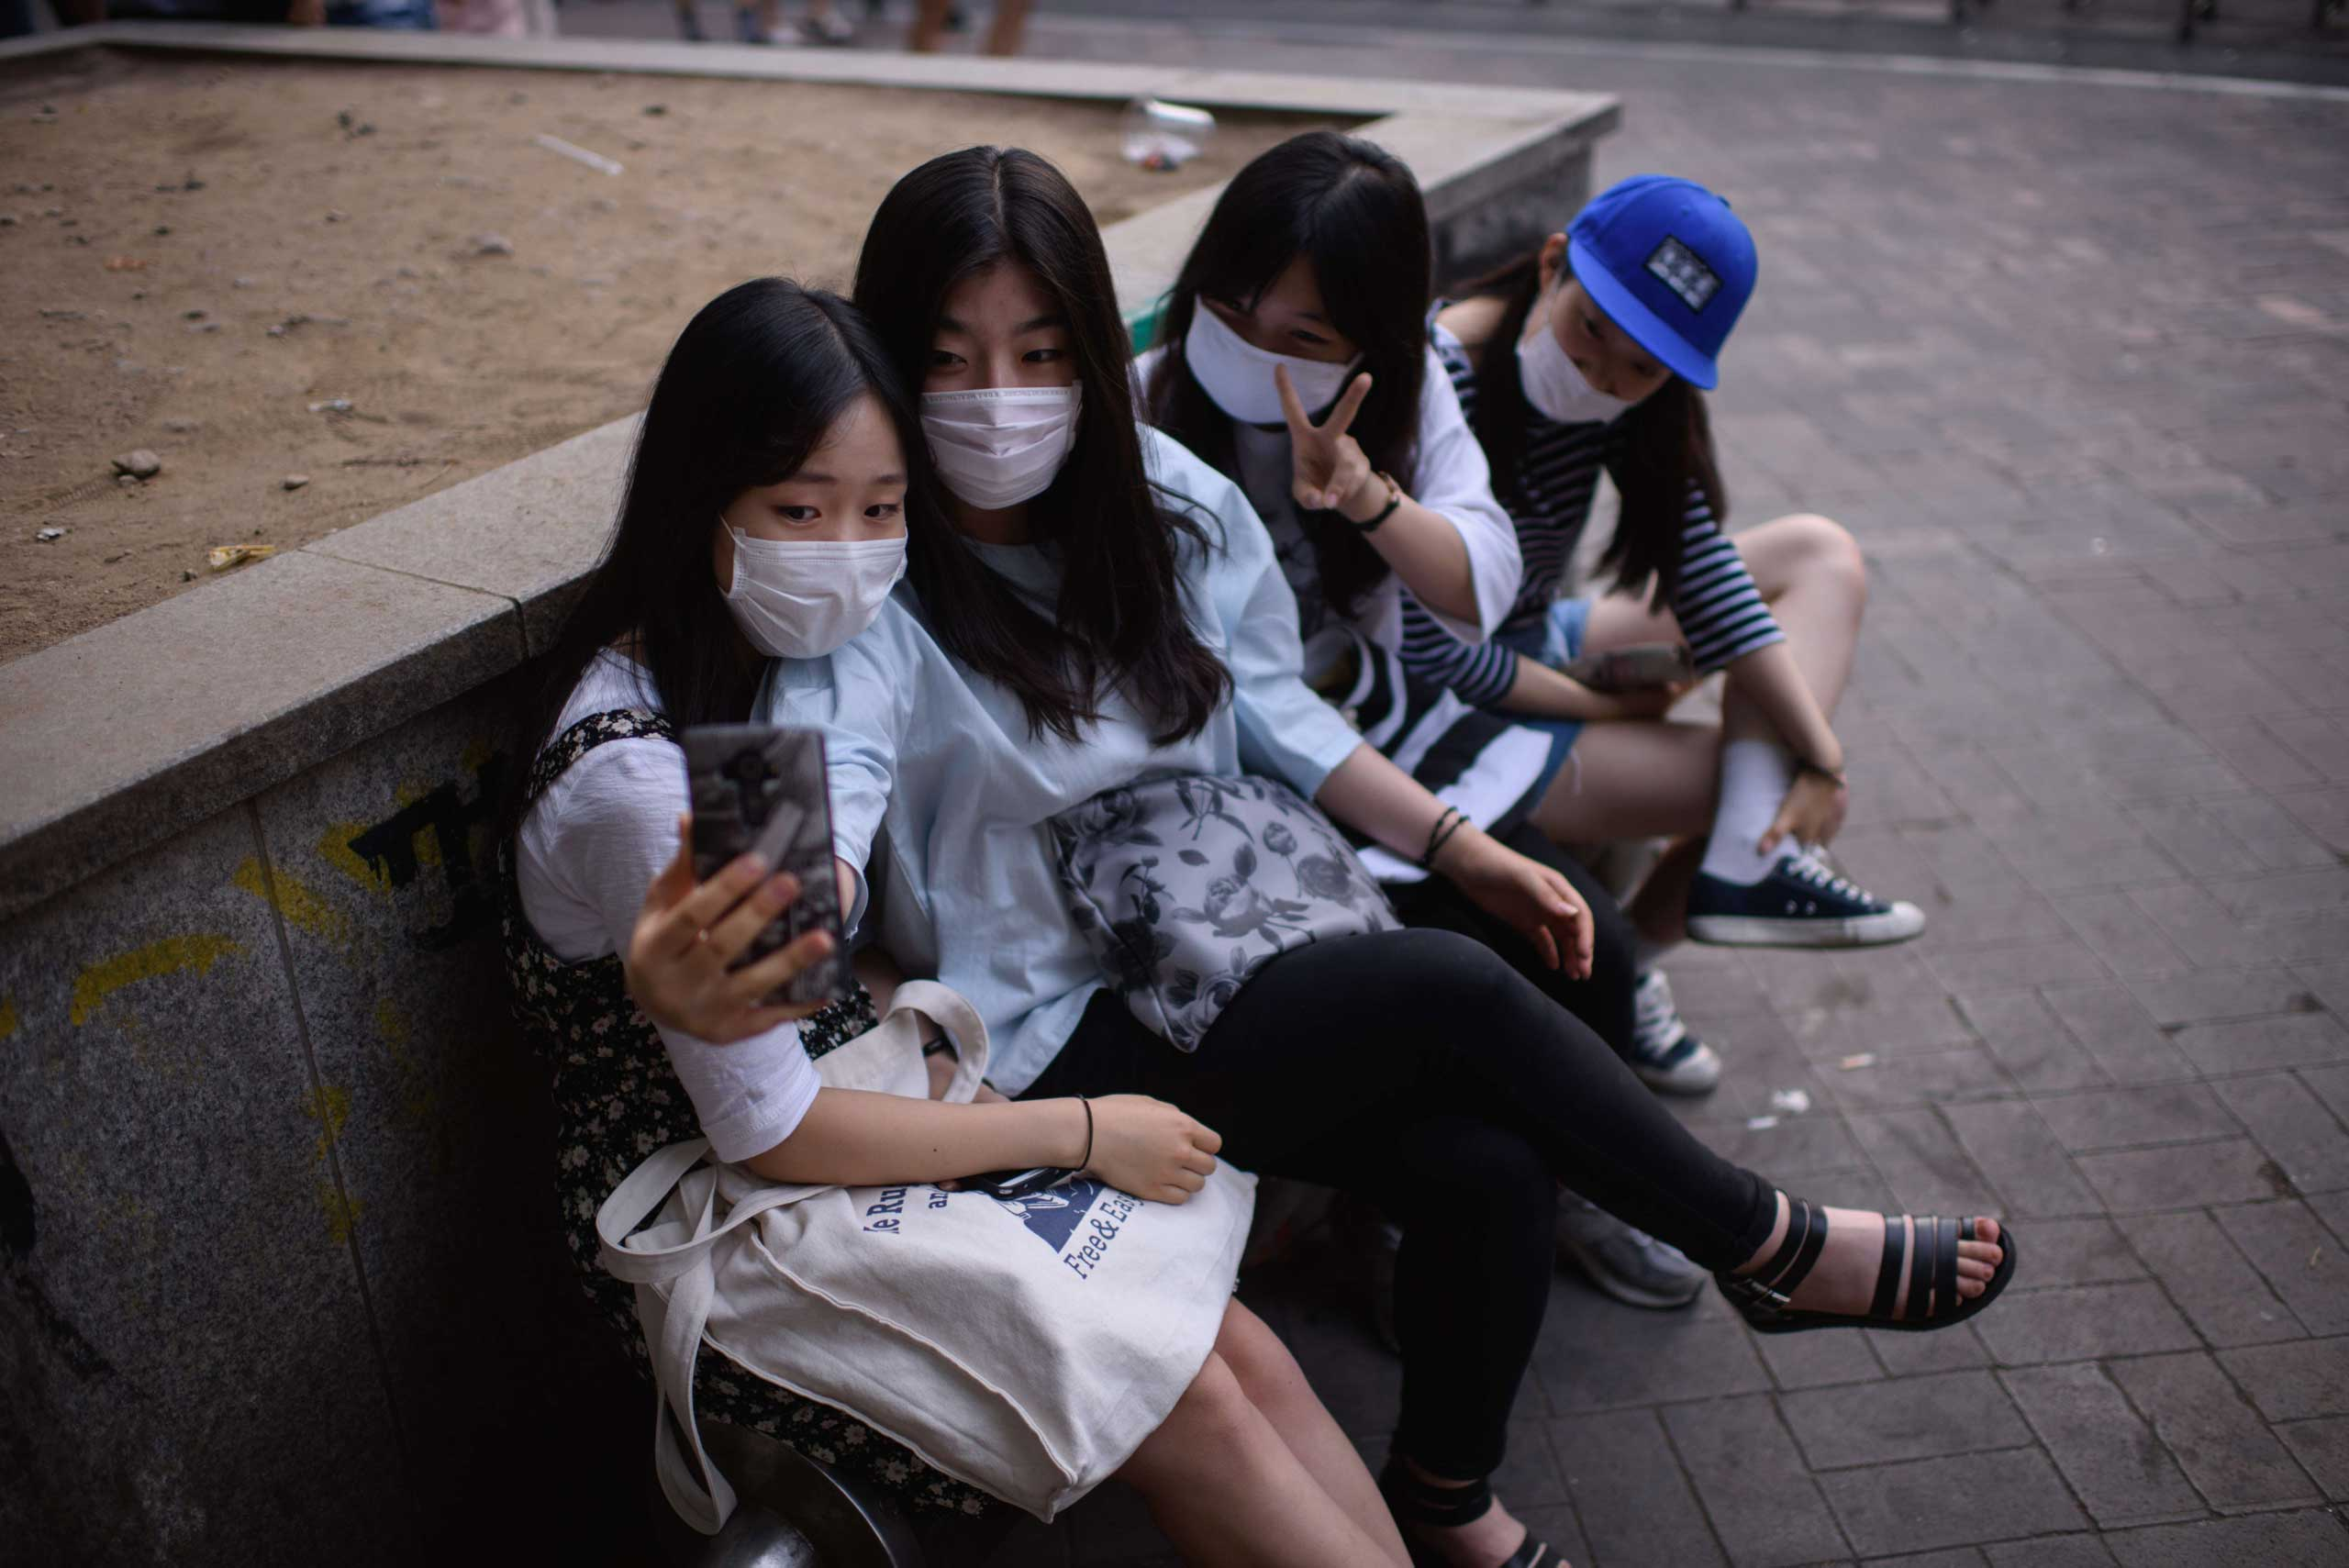 """A group of students wearing face masks pose for a """"selfie"""" as they sit on a street in the popular student area of Hongdae in Seoul on June 7, 2015."""